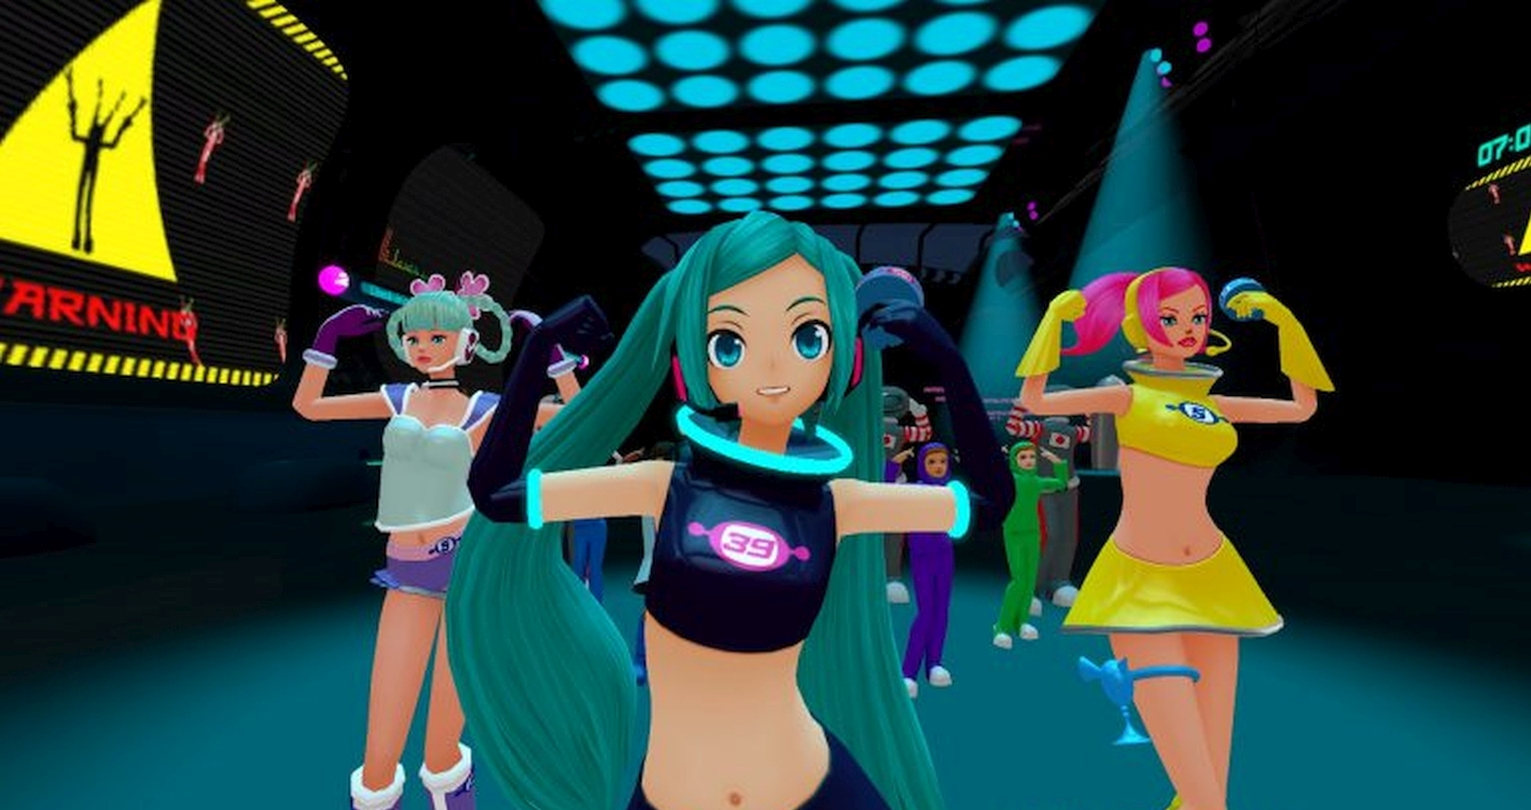 Hatsune Miku DLC Dances To Space Channel 5 VR: Kinda Funky News Flash! This July